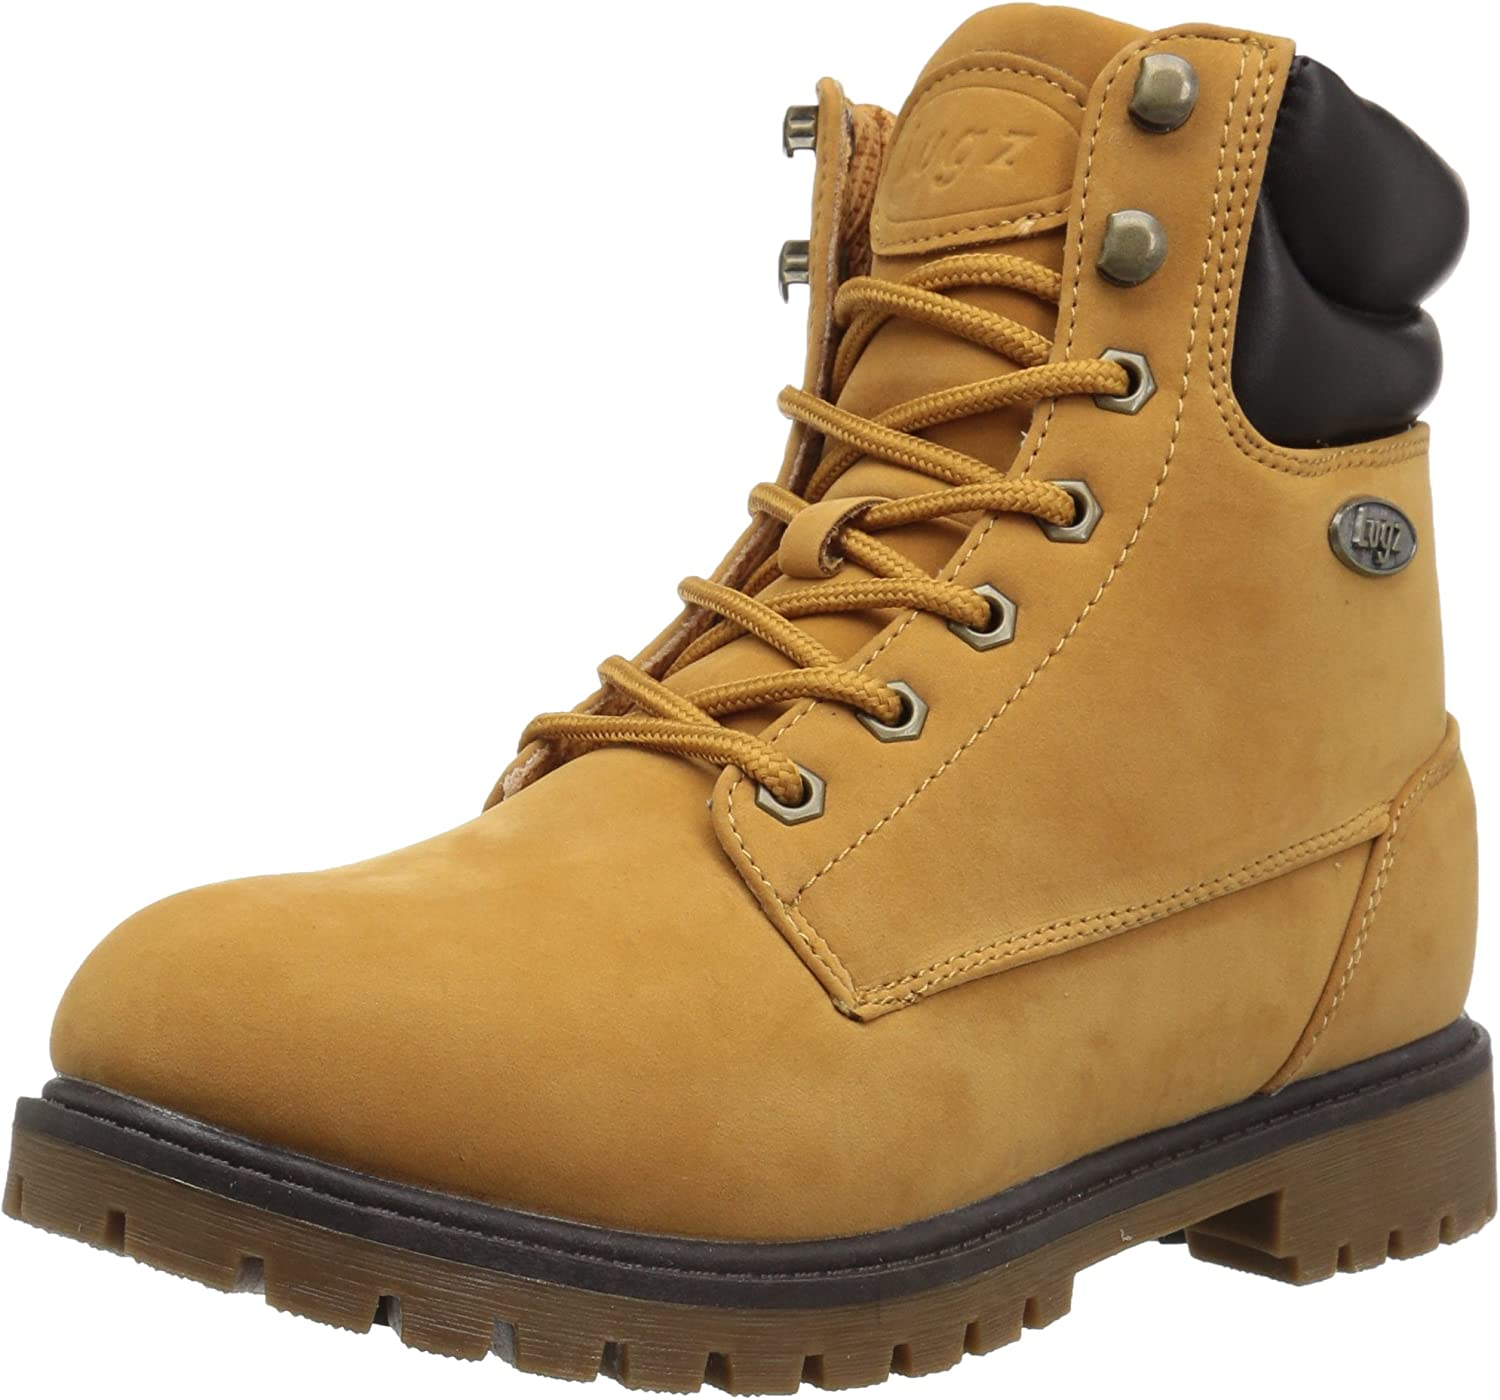 Lugz Hommes's Nile Hi mode démarrage, oren Wheat bark Gum, 10 D US